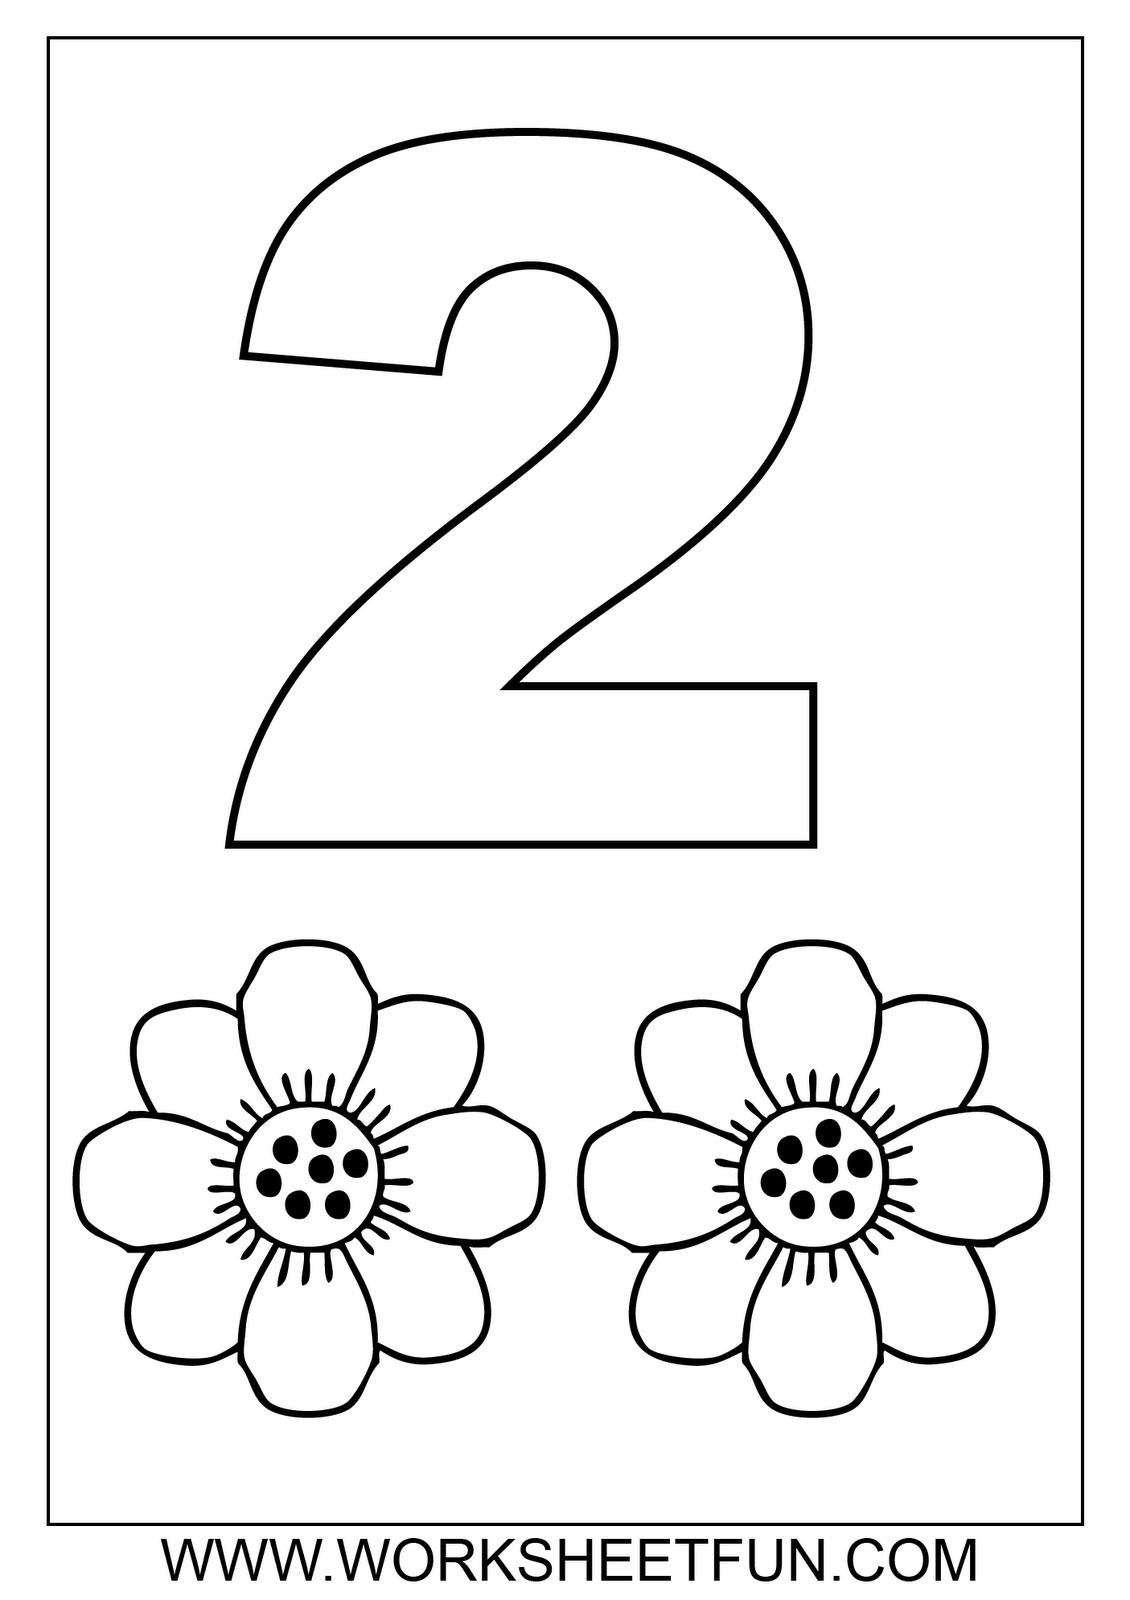 Number Tracing Worksheets For Kindergarten 110 Ten Worksheets – Number 1 Worksheet